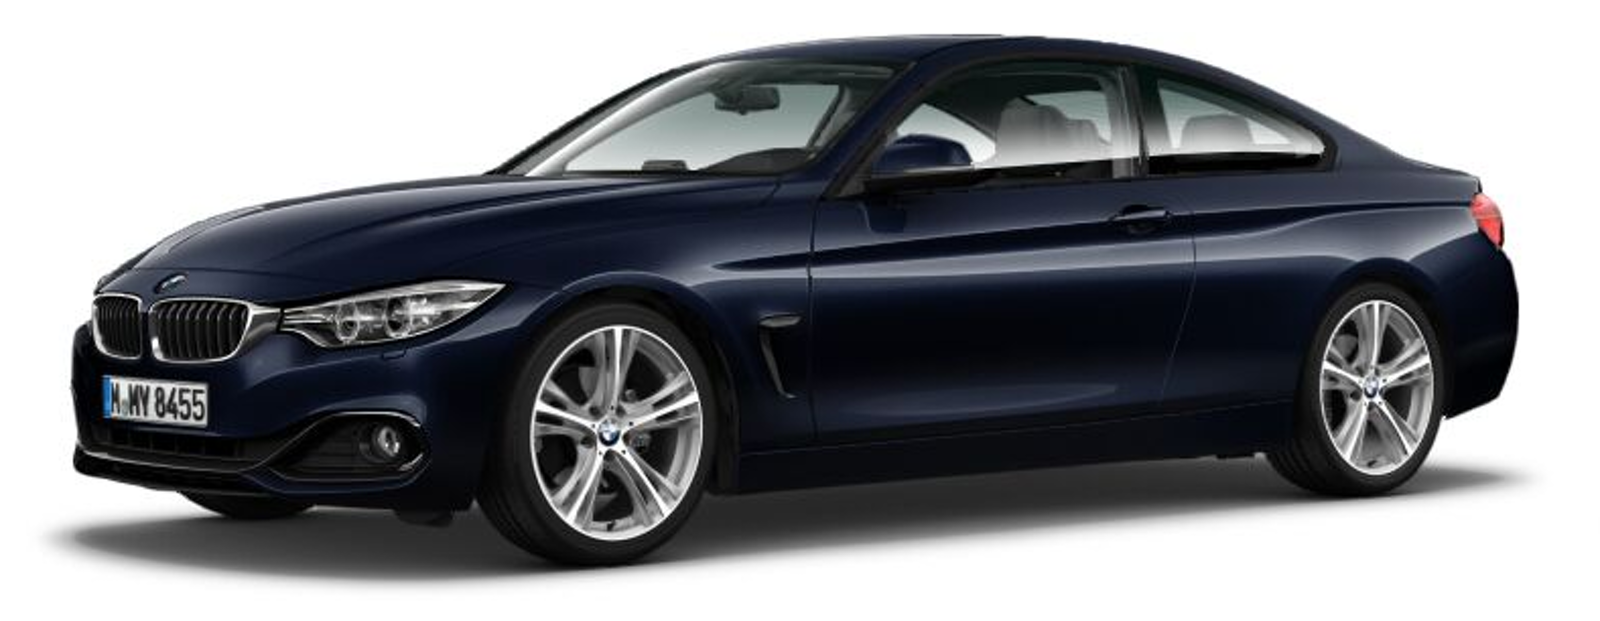 bmw 4 series colours guide and prices carwow. Black Bedroom Furniture Sets. Home Design Ideas